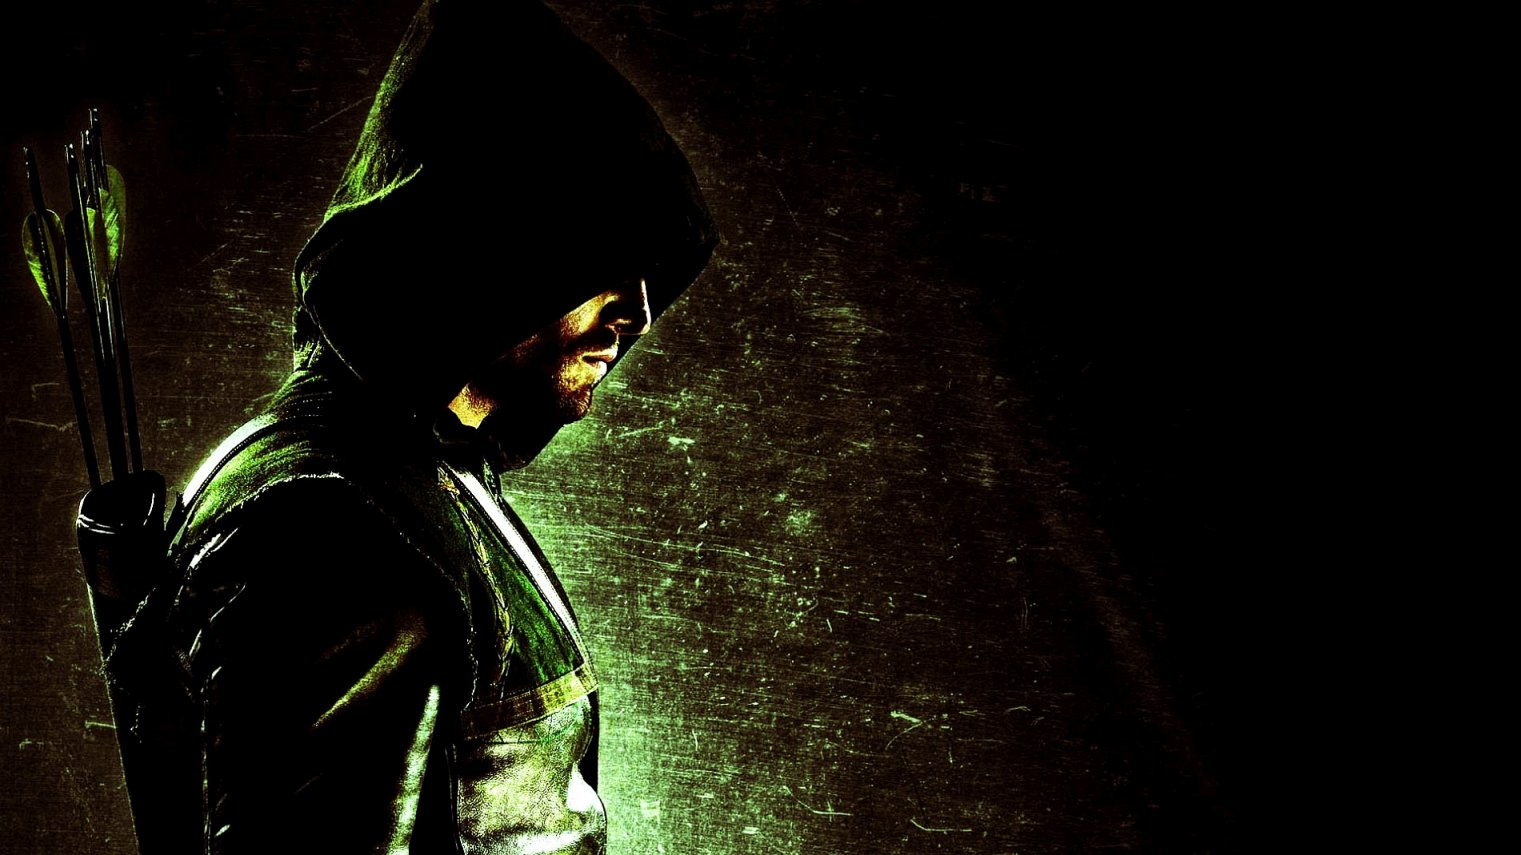 Arrow S7 episode 10 watch online